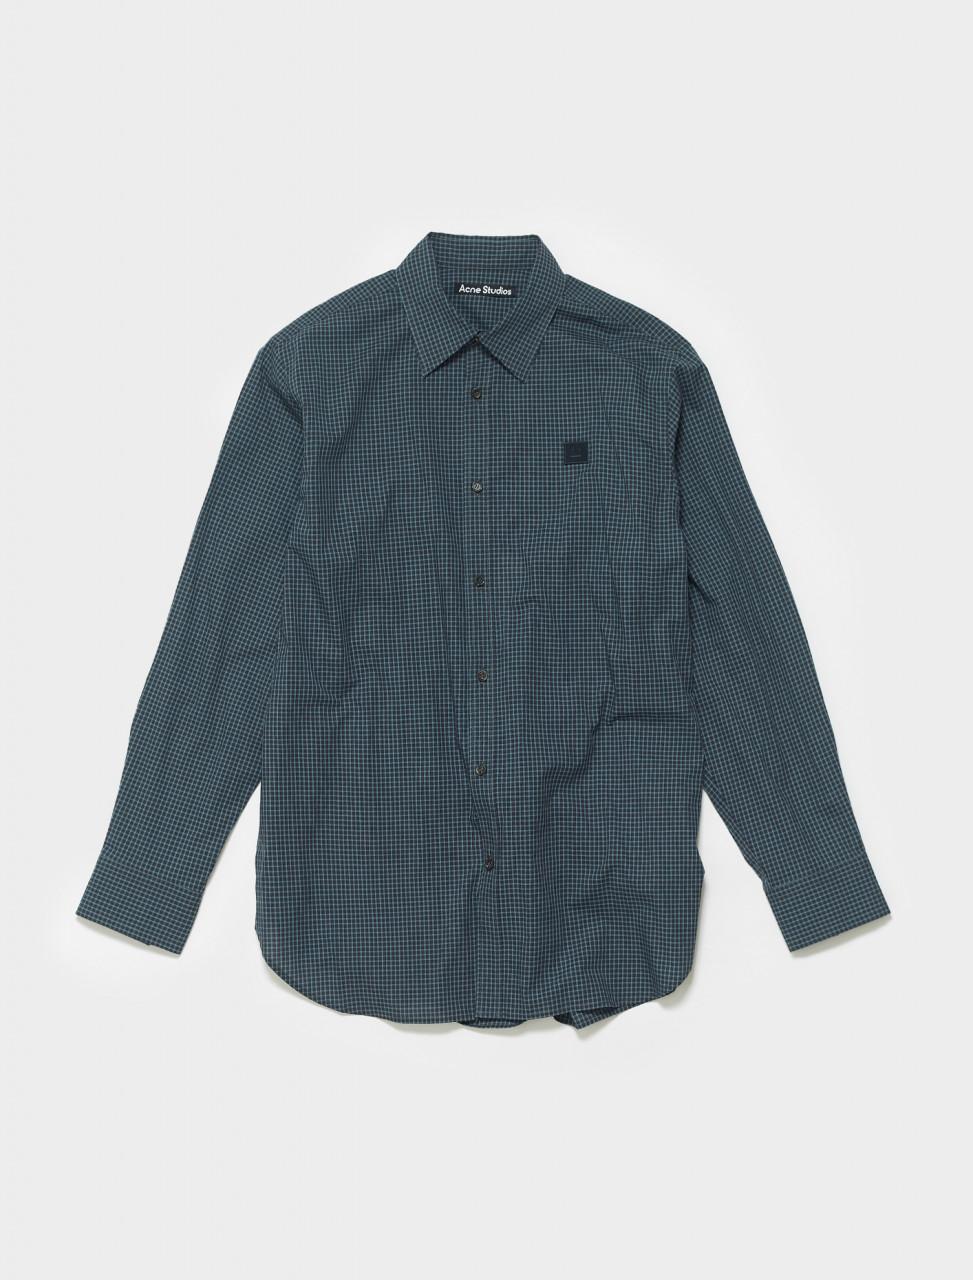 110-CB0018-885 ACNE STUDIOS FACE PATCH CHECK SHIRT NAVY BLUE